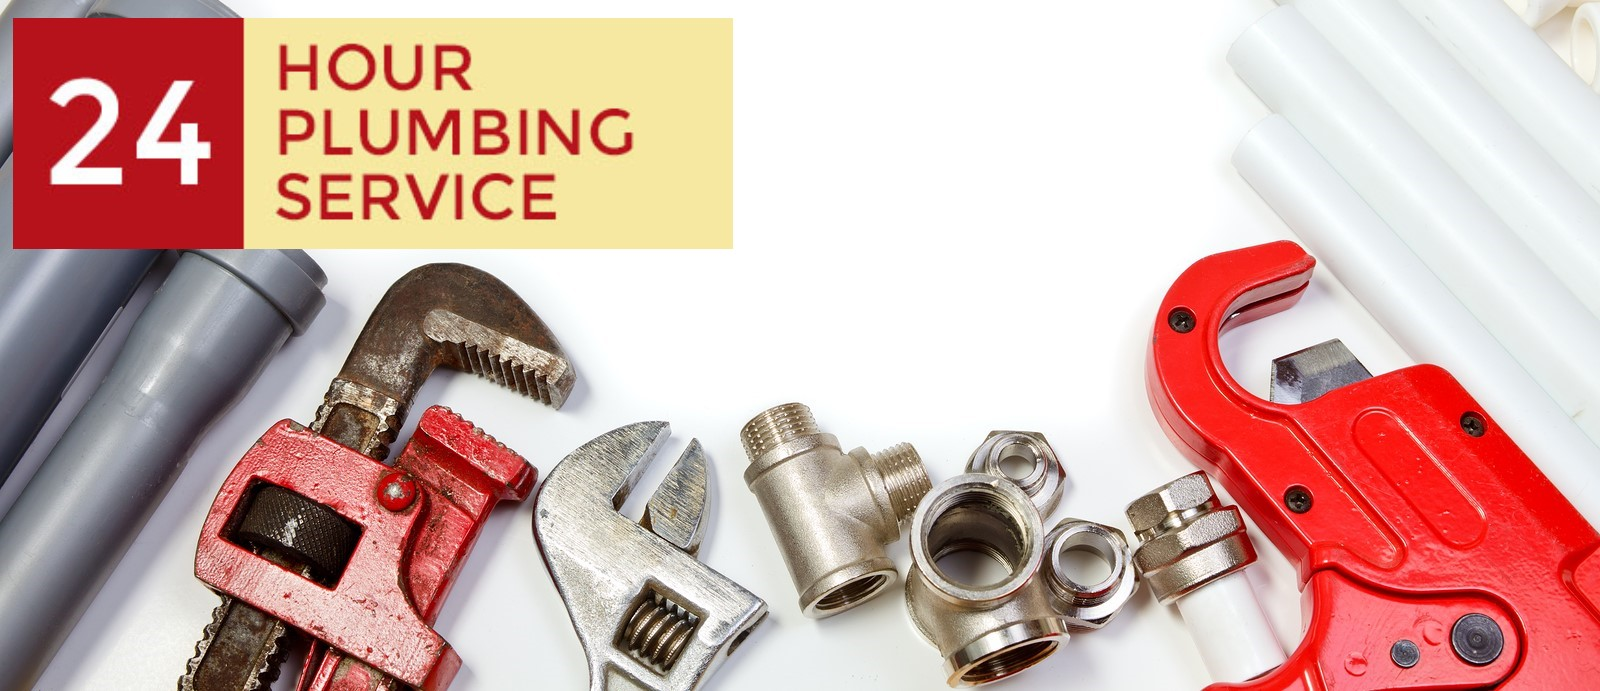 Most Common Plumbing Issues & How To Fix Them